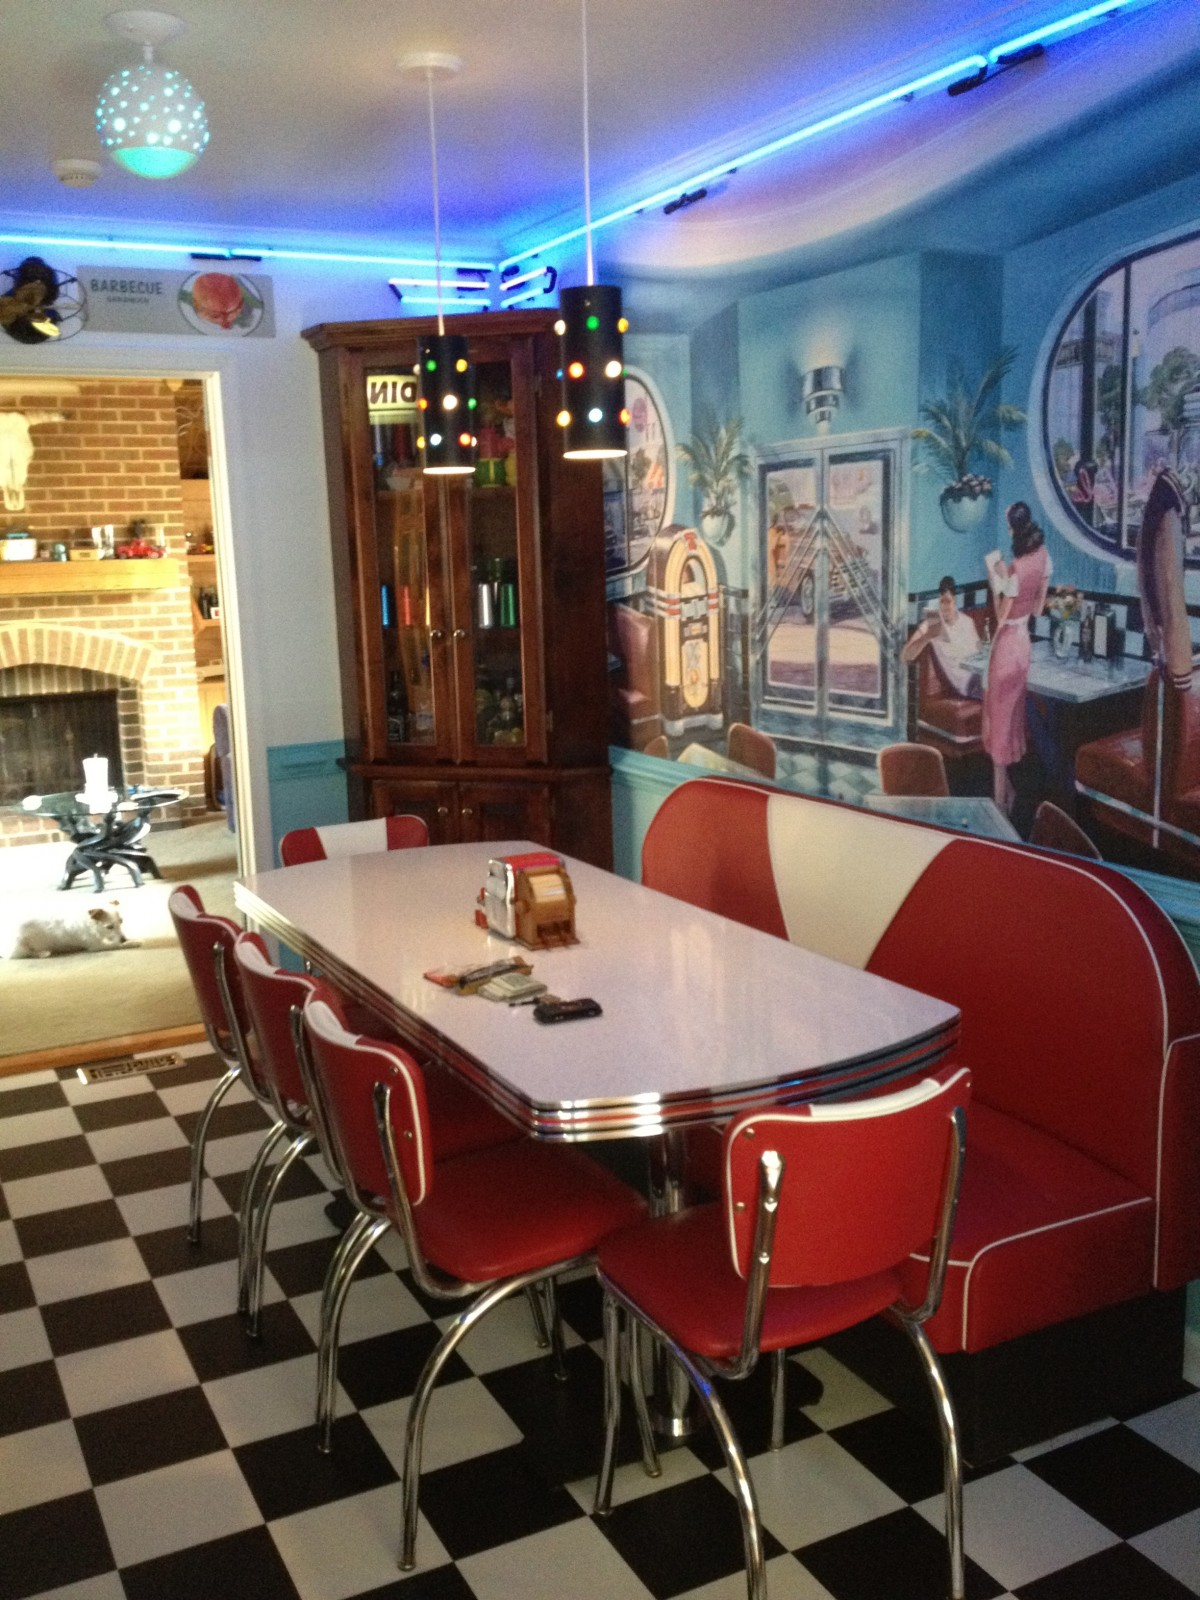 retro kitchen booth retro kitchen chairs Retro Kitchen Ideas Diner Booth Chairs Tables Home Diner